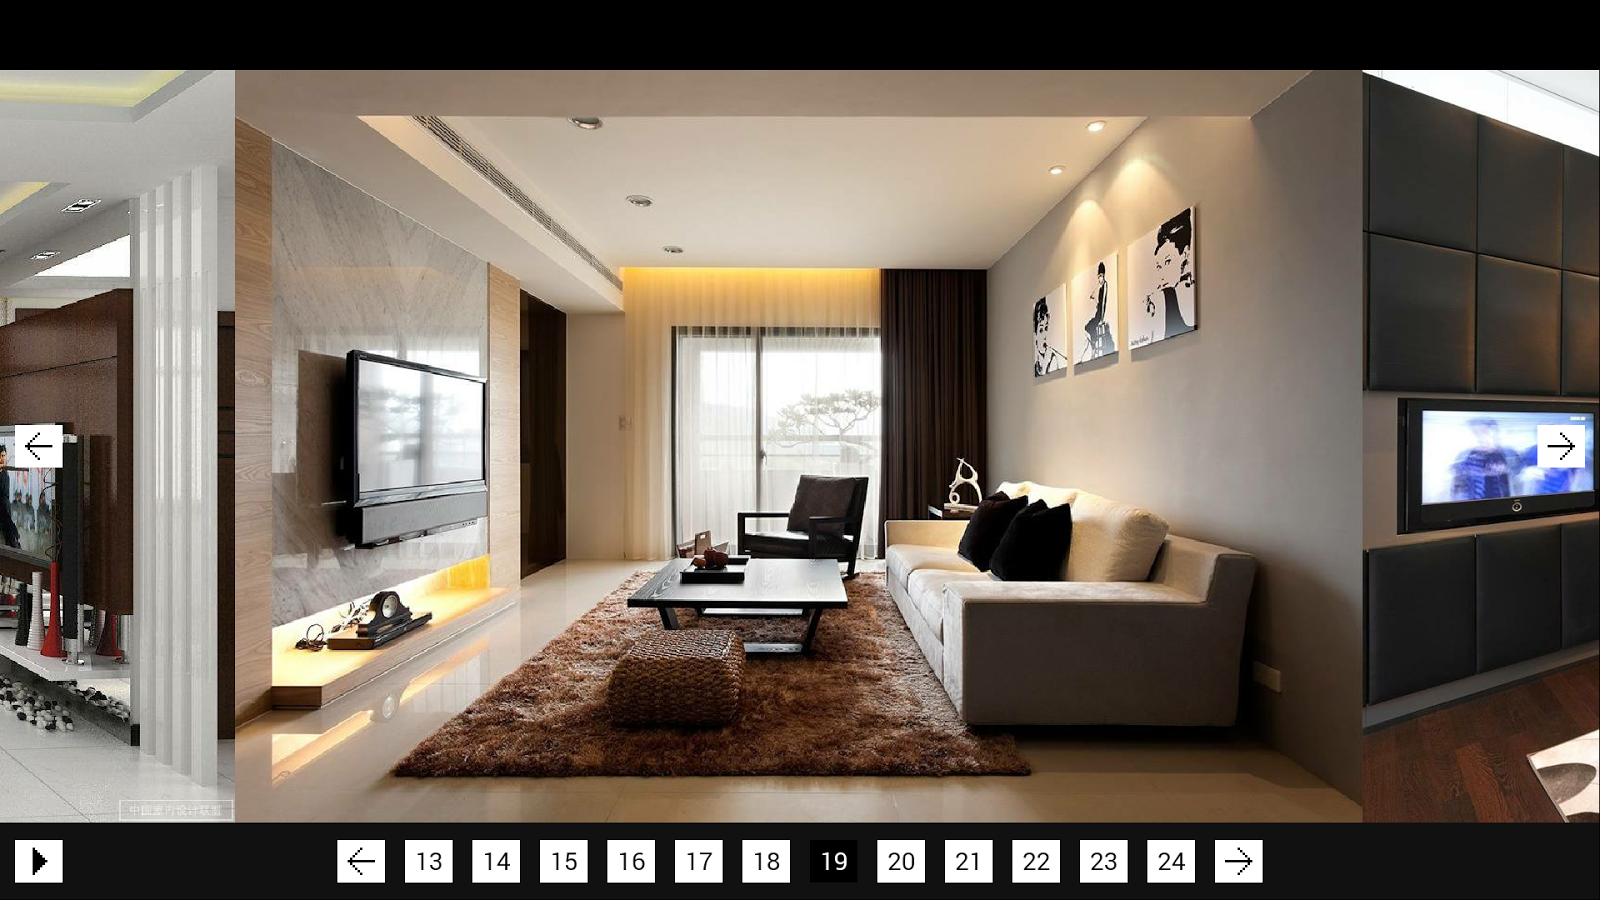 Home interior design android apps on google play House interior design ideas app